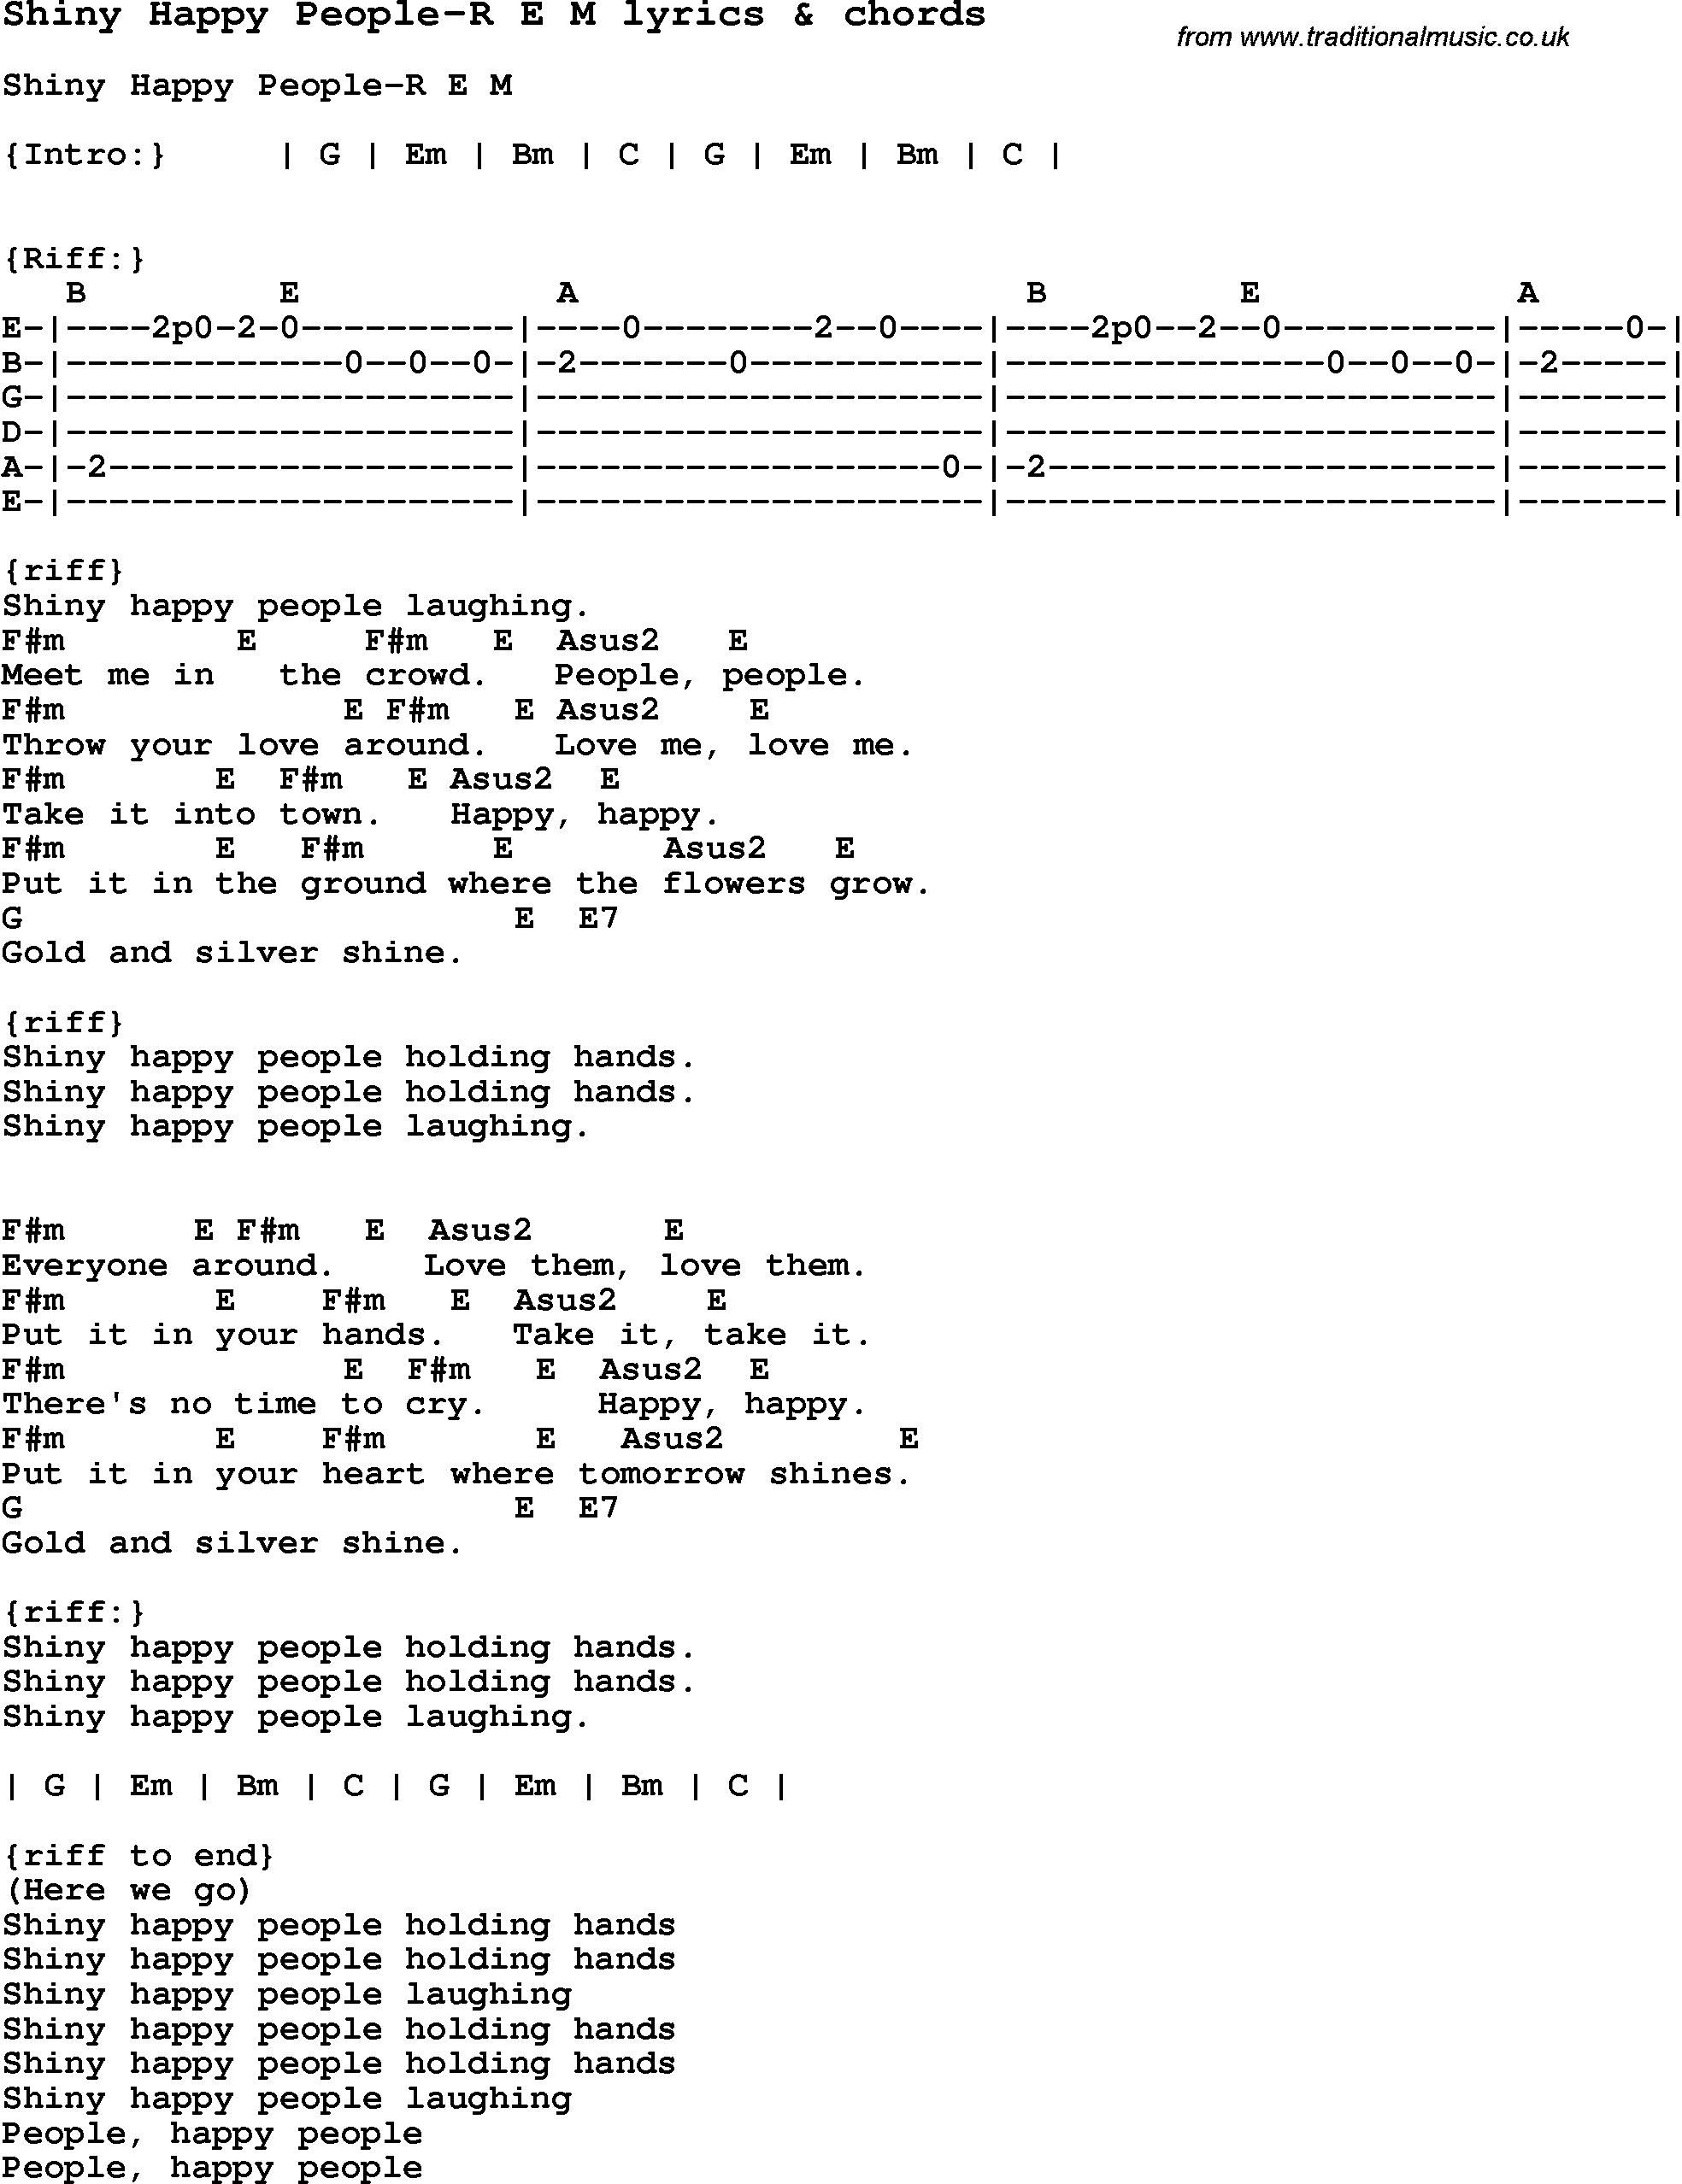 Love Song Lyrics Forshiny Happy People R E M With Chords